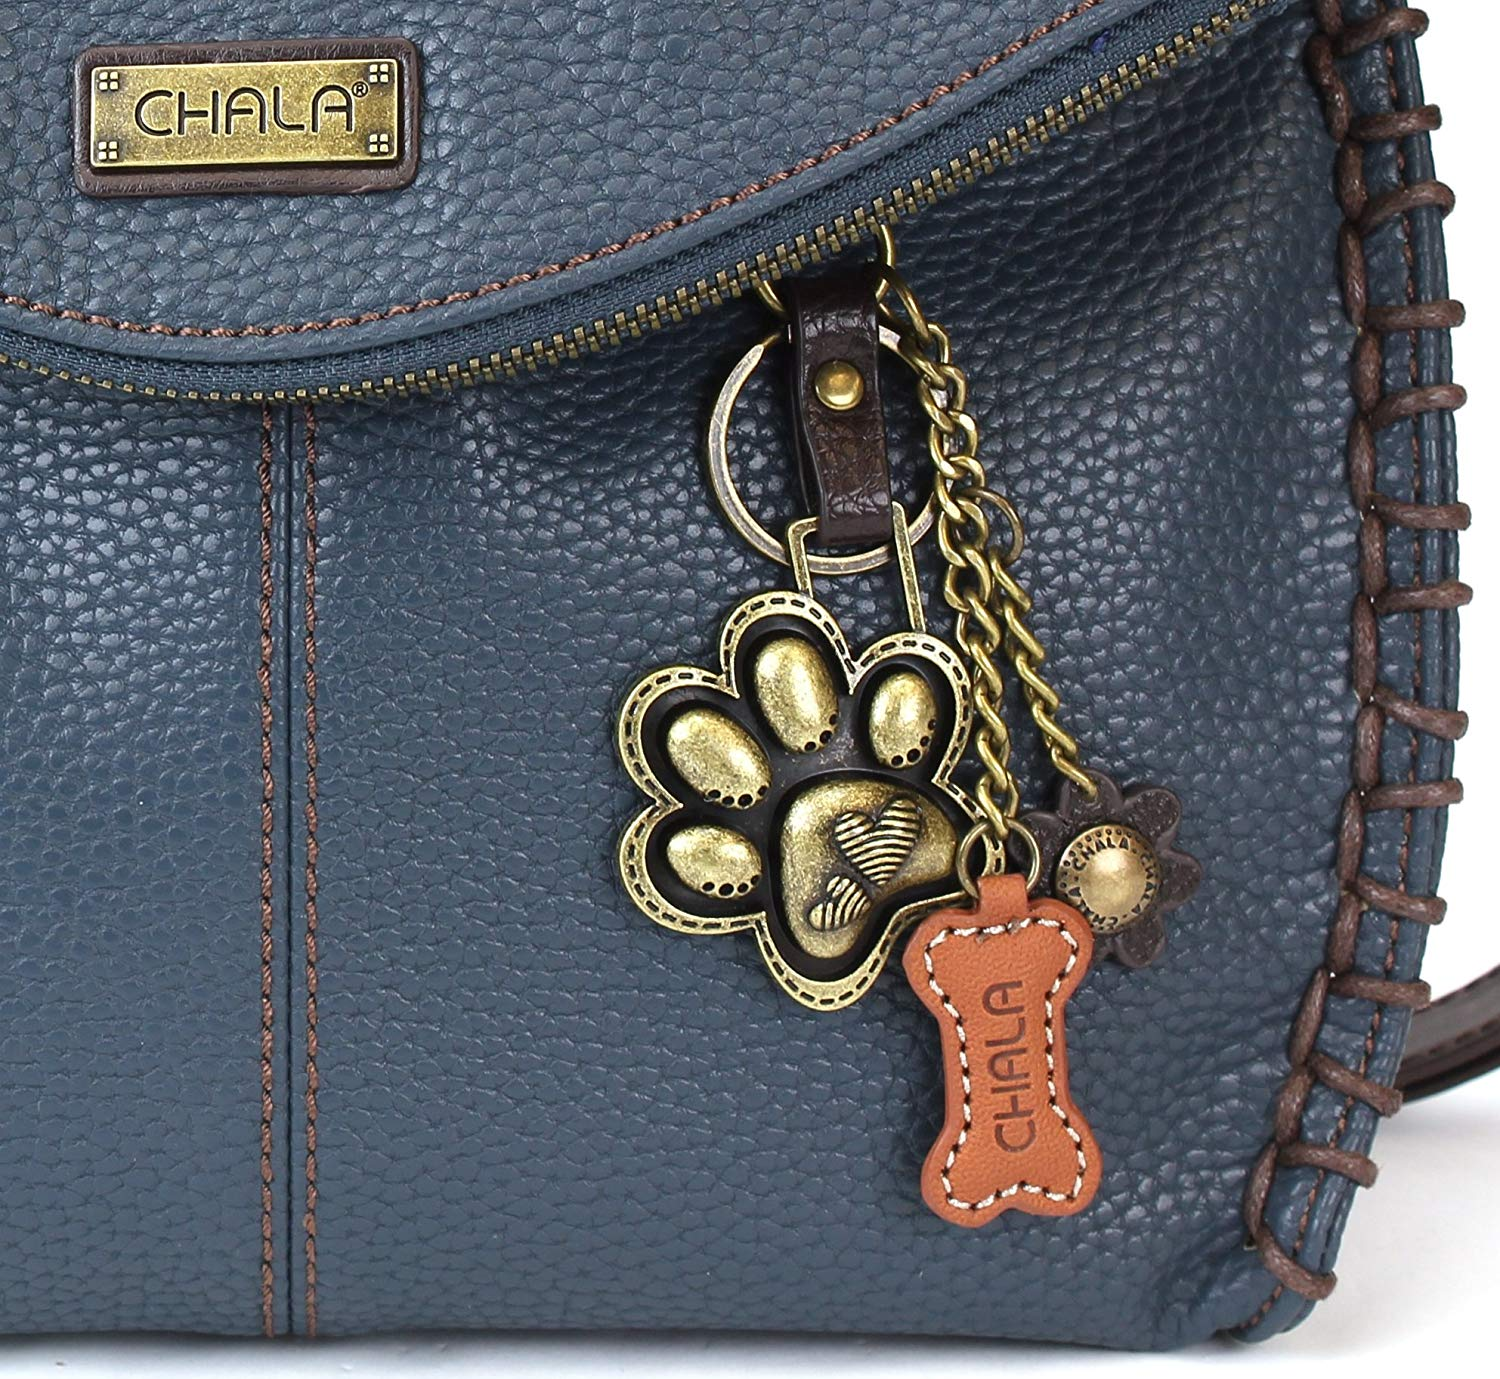 df63893858ff Get Quotations · Chala Charming Crossbody Bag - Flap Top and Metal Key  Charm in Navy Blue